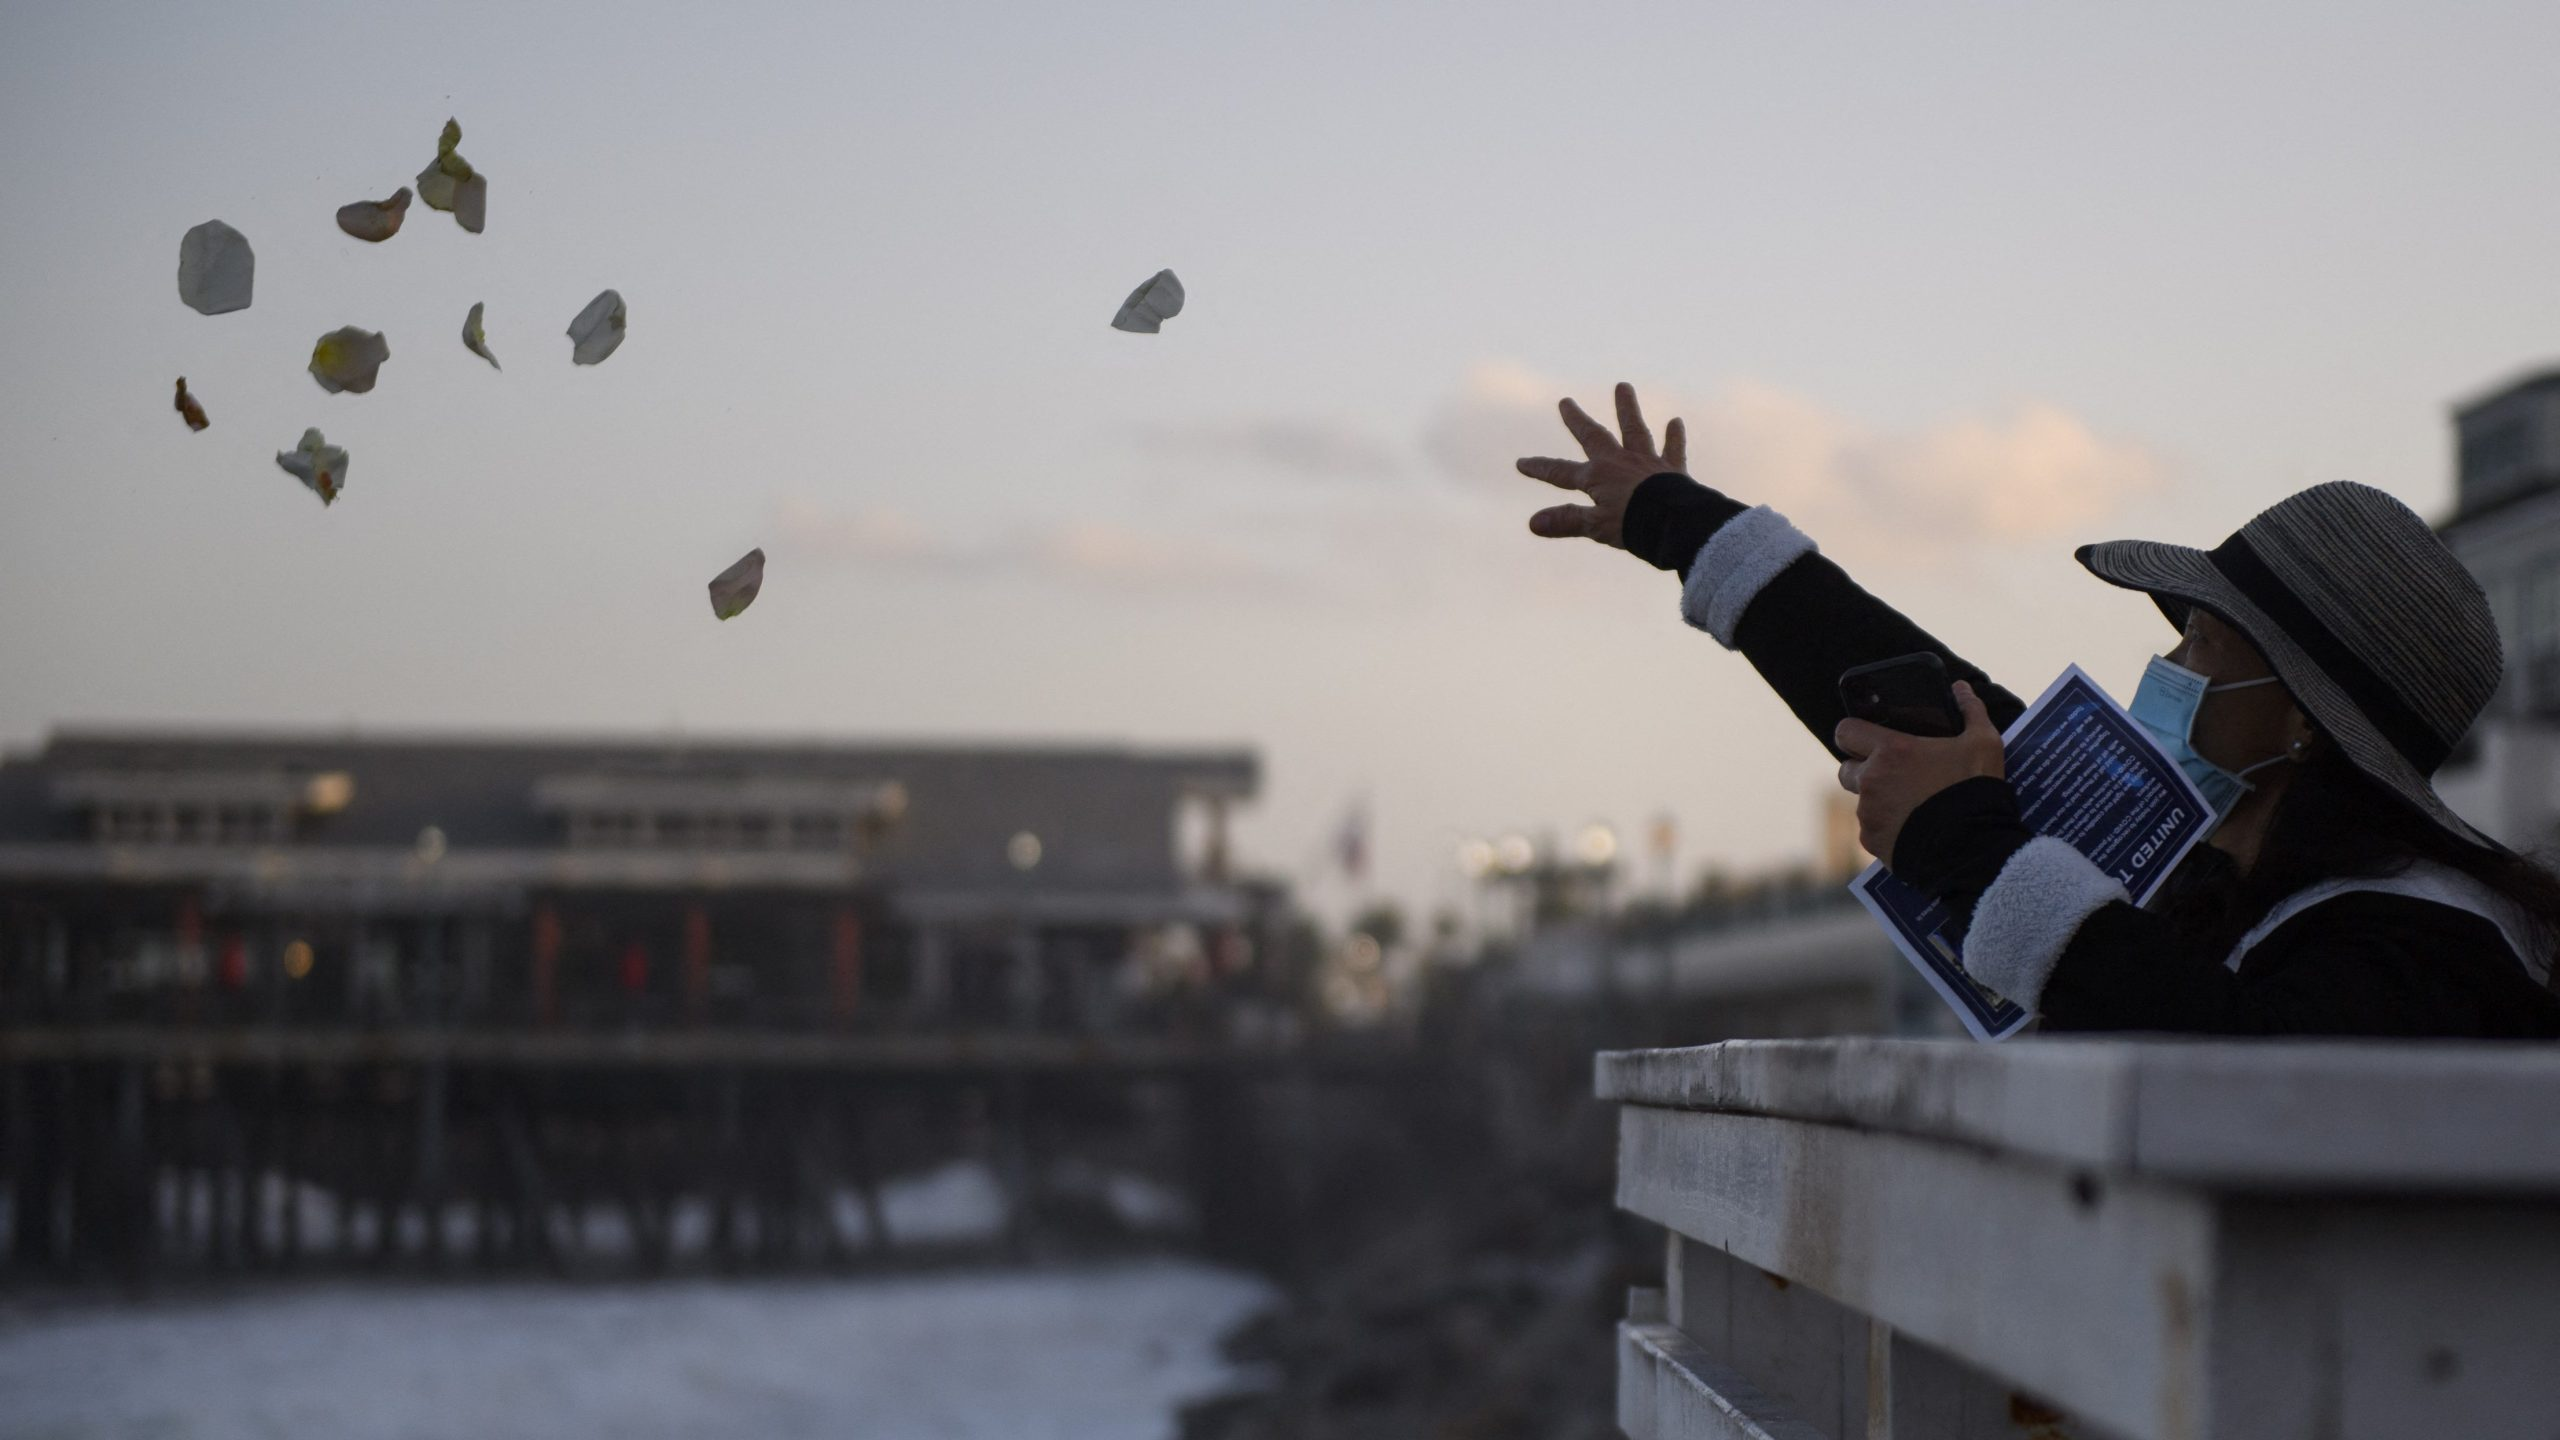 People throw rose petals into the Pacific Ocean during a sunrise vigil organized by United Nurses Associations of California/Union of Health Care Professionals (UNAC/UHCP) at the Redondo Beach Pier on May 22, 2021, to remember health care workers and patients who died from the COVID-19 pandemic. (Patrick T. Fallon / AFP / Getty Images)